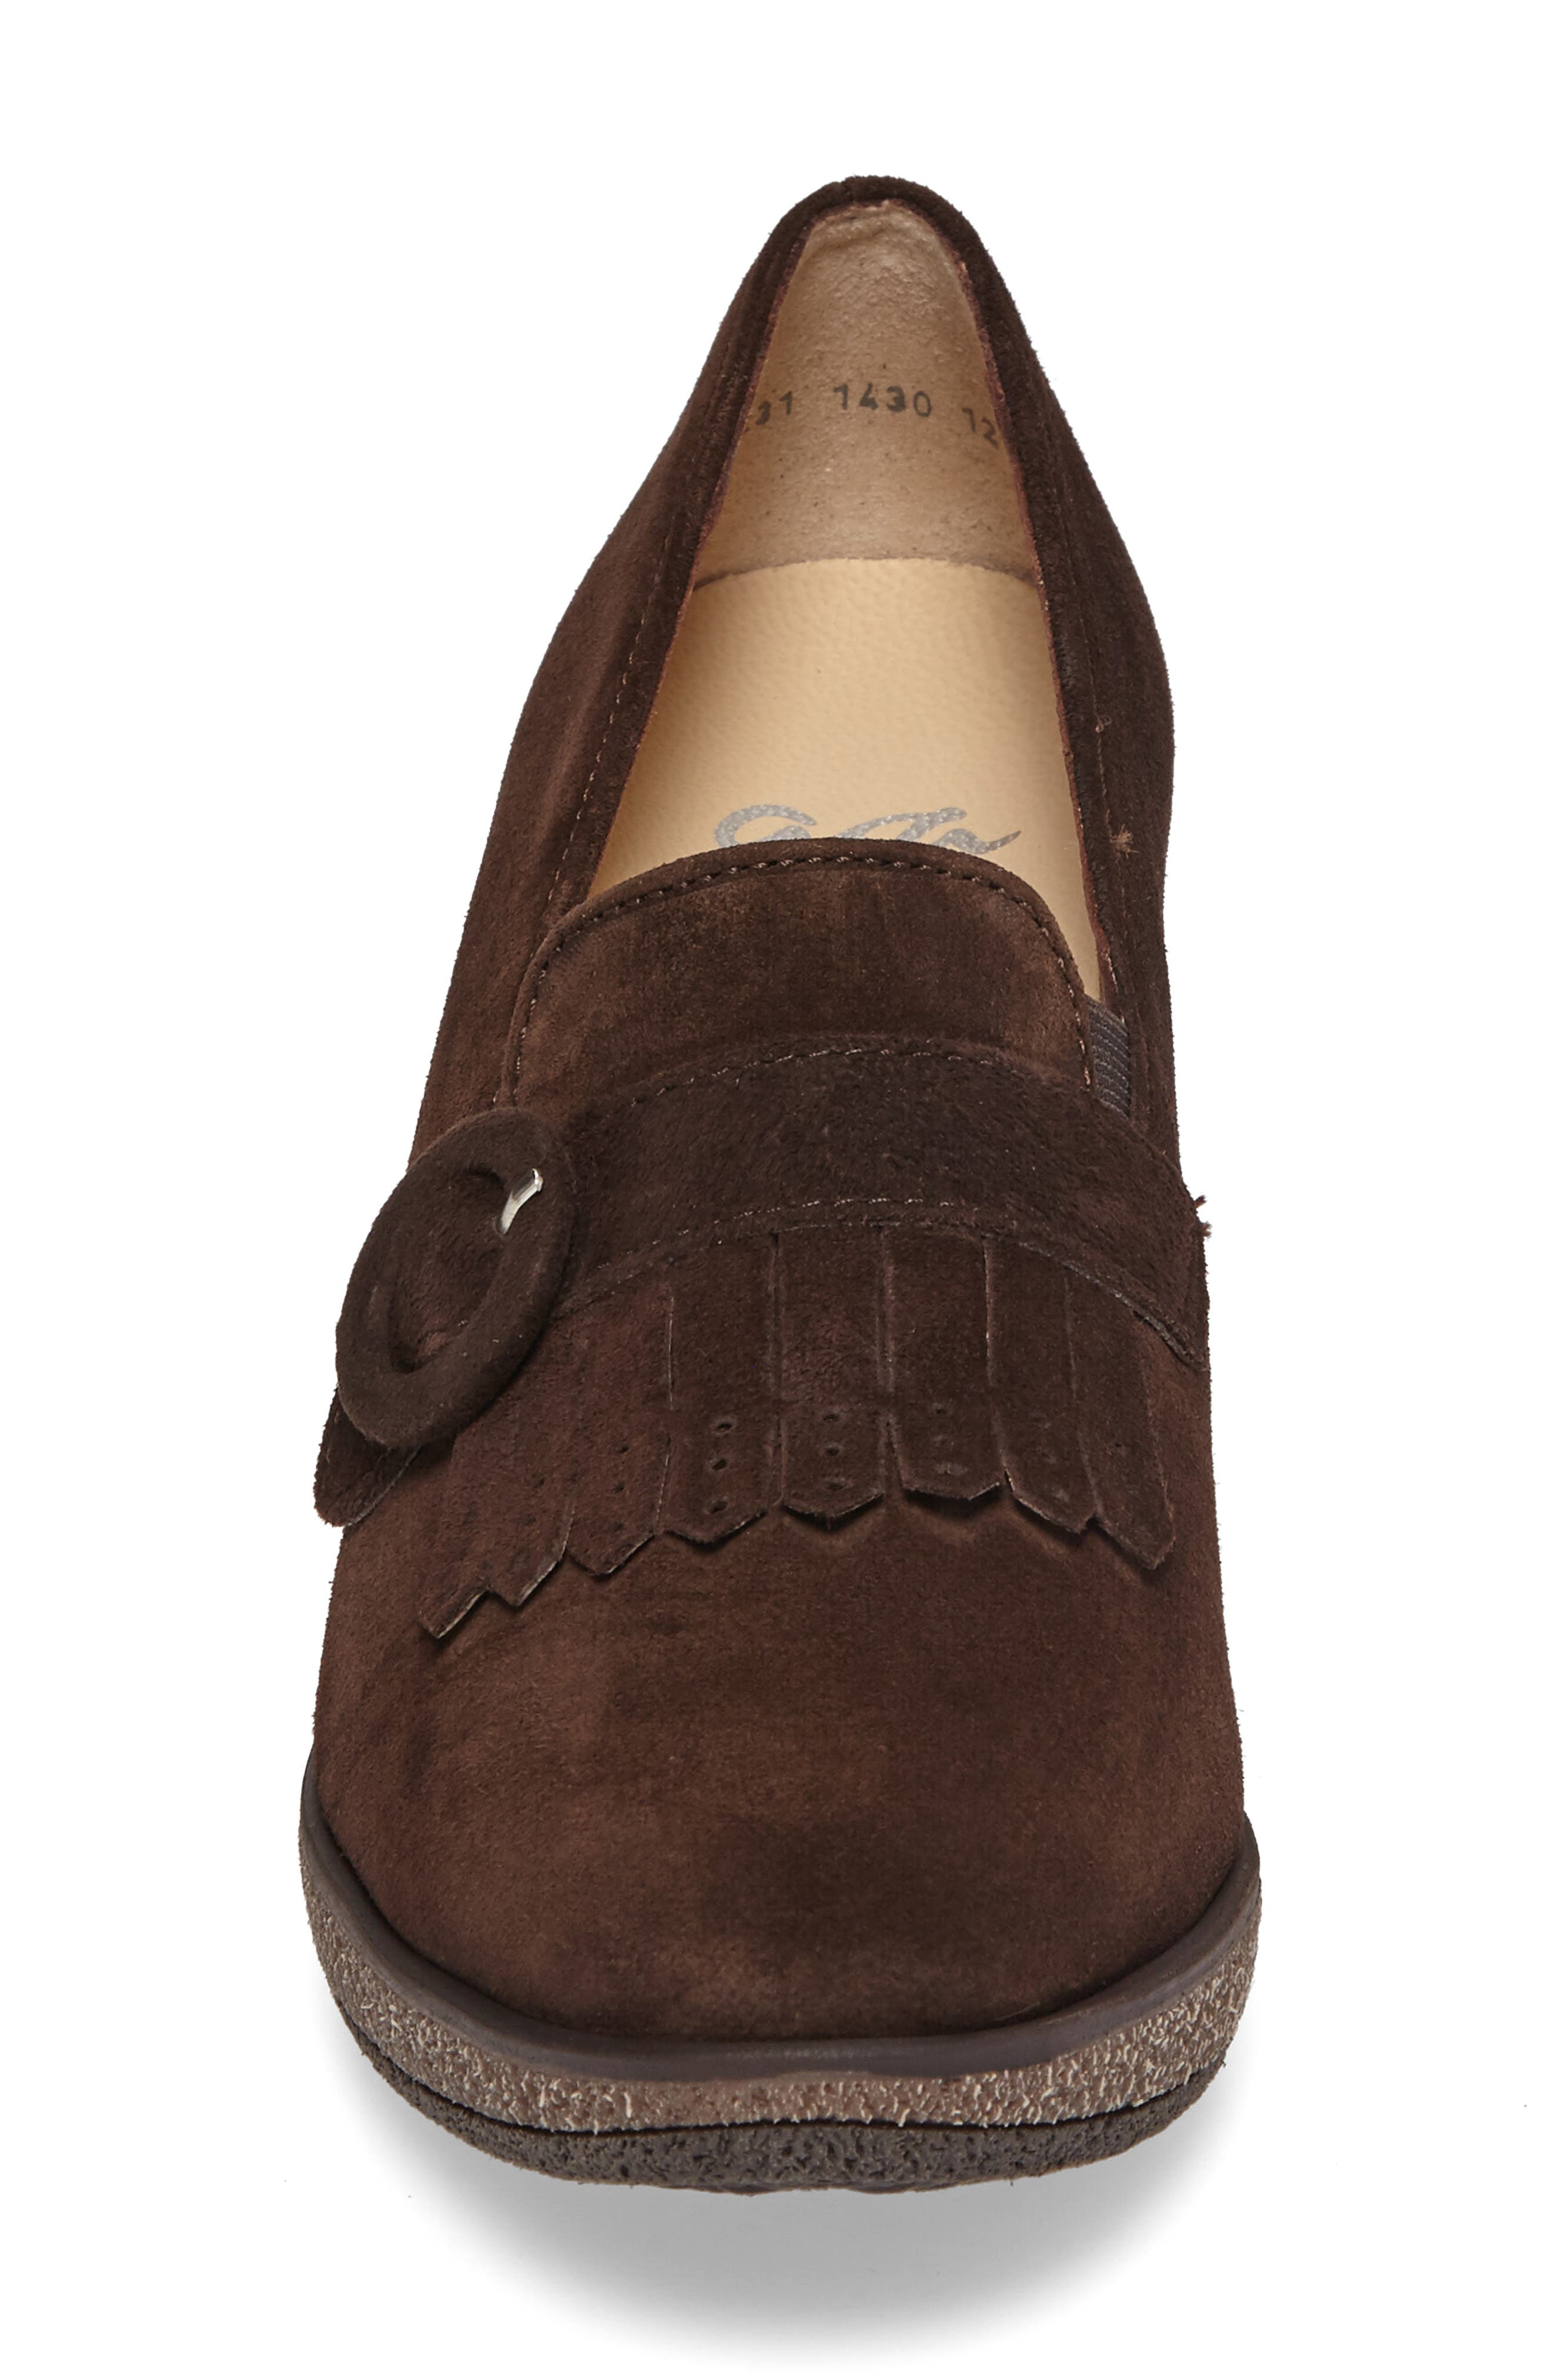 ARA, Becky Loafer Pump, Alternate thumbnail 4, color, BROWN SUEDE